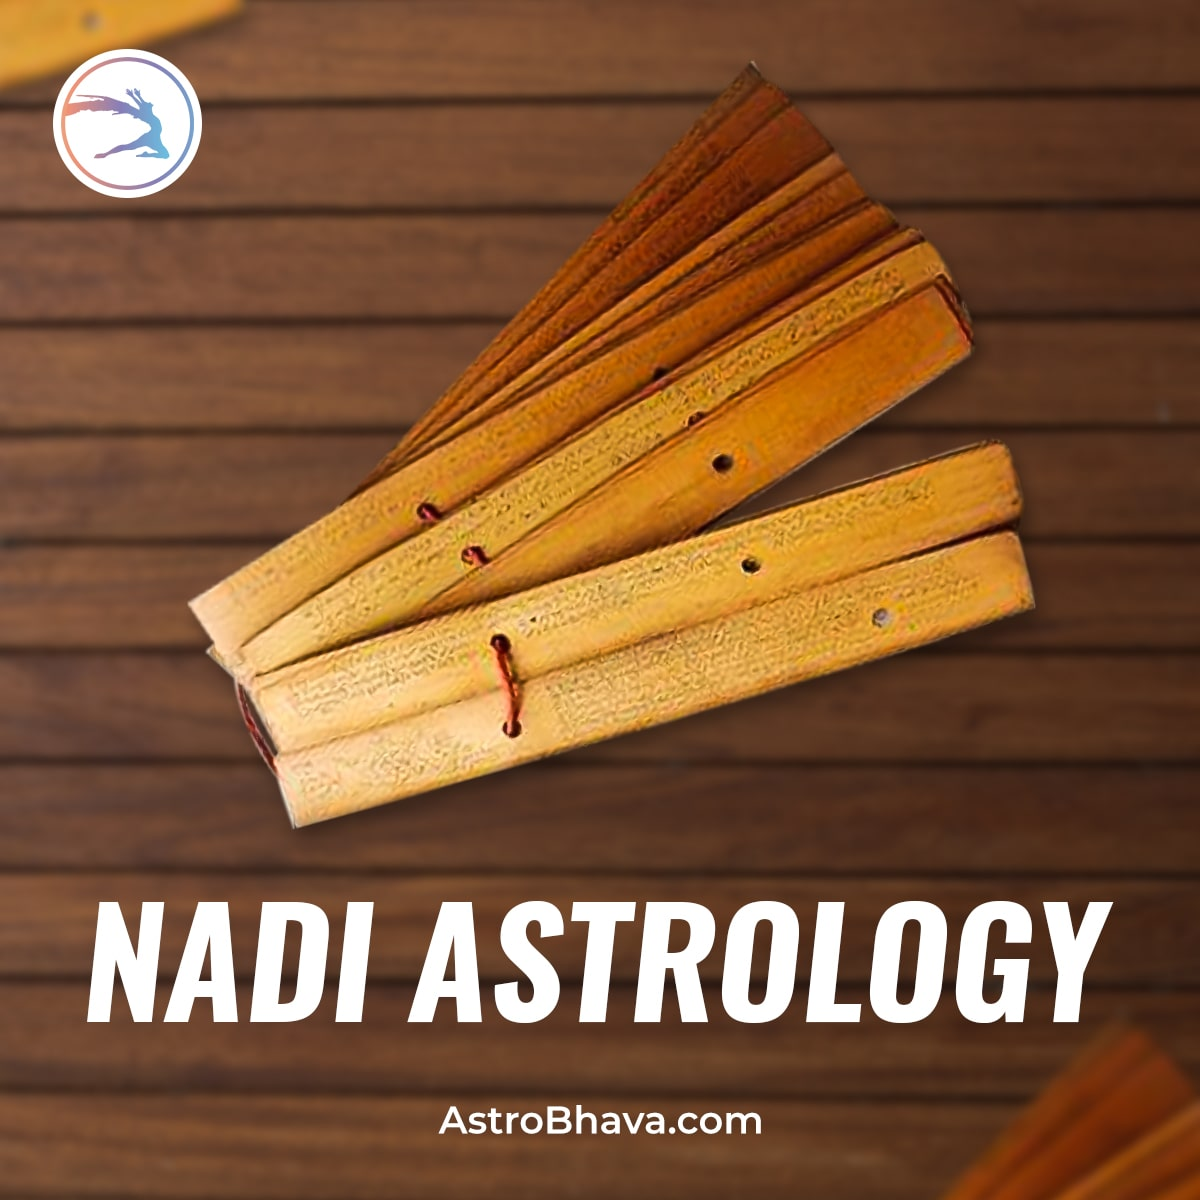 Describing Fate With The Help Of AstroBhava's Online Nadi Astrology Services